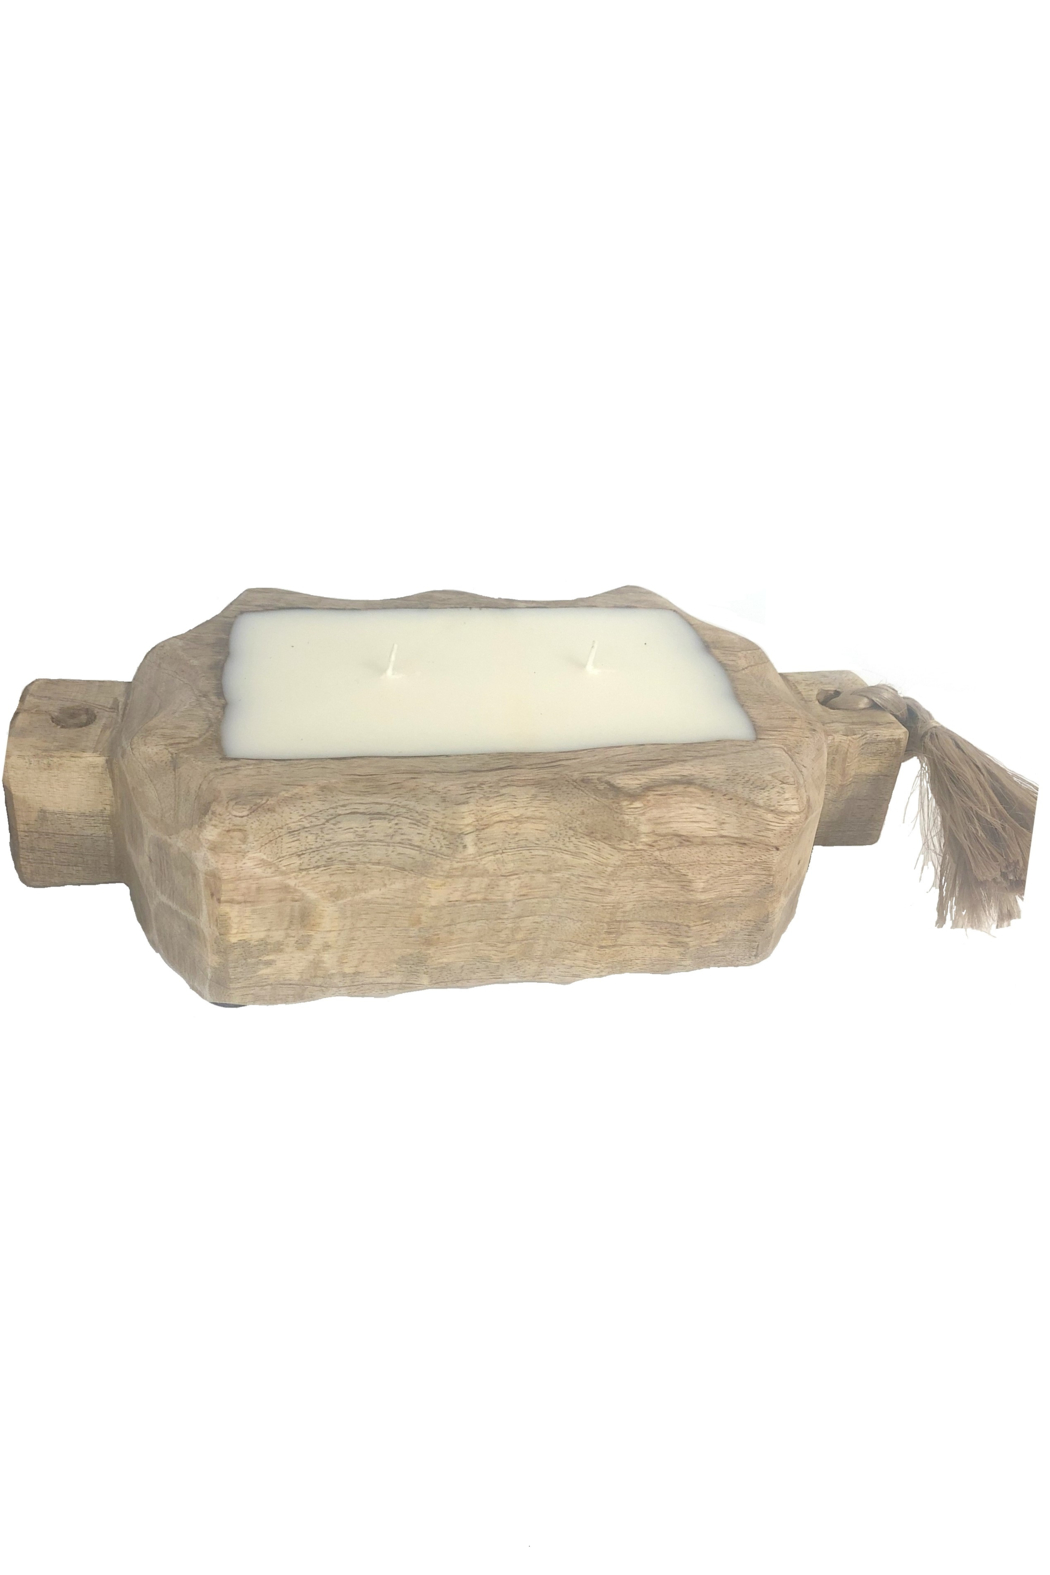 Himalayan Trading Post Small Driftwood Tray- GRAPEFRUIT PINE - Front Full Image